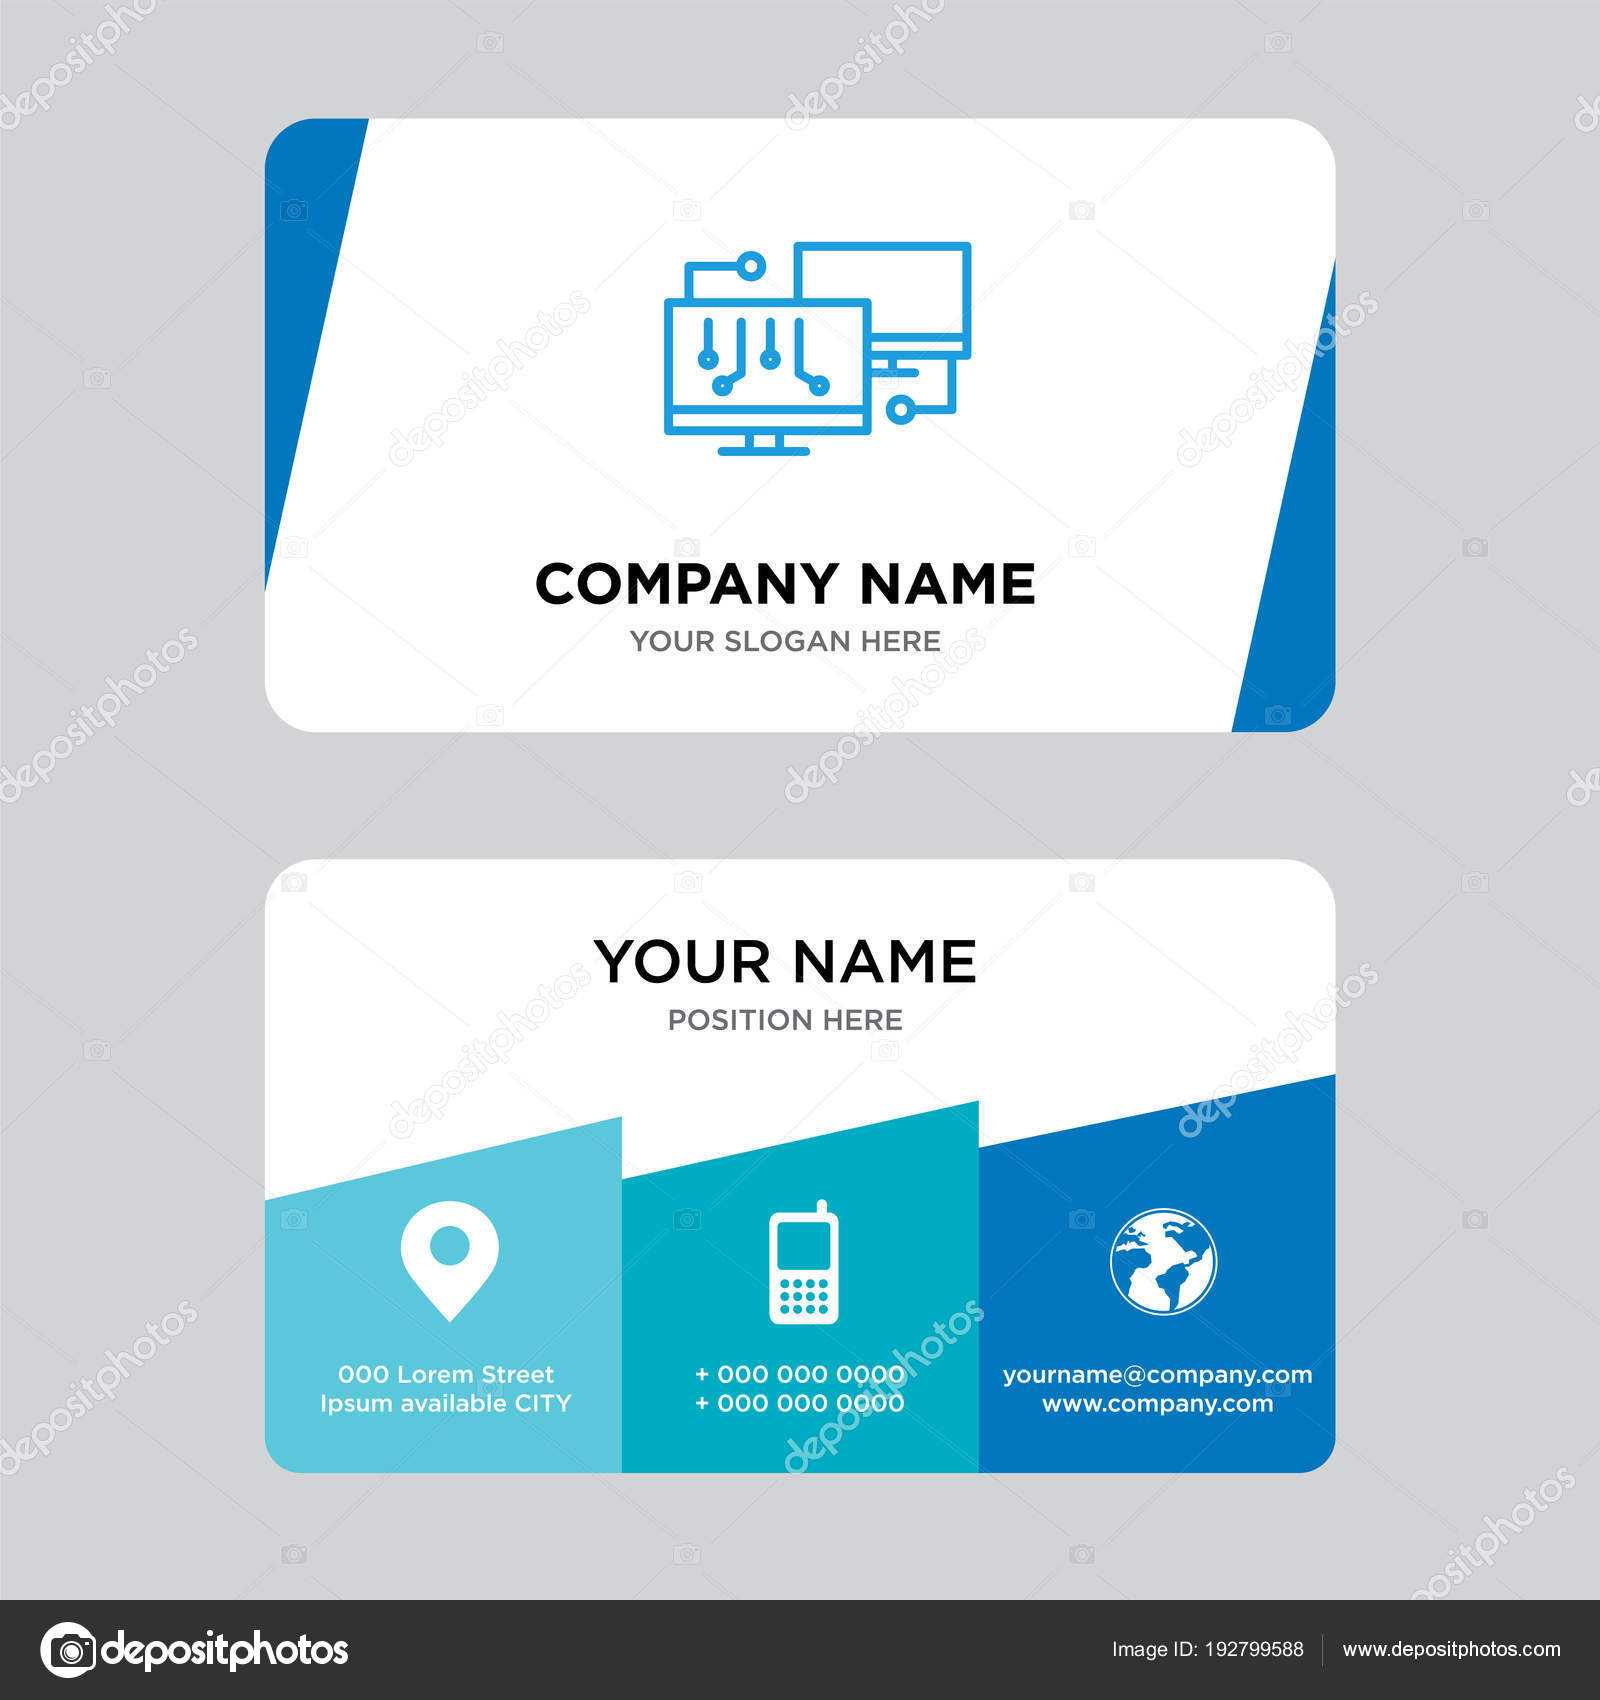 Network Business Card Design Template — Stock Vector Intended For Networking Card Template